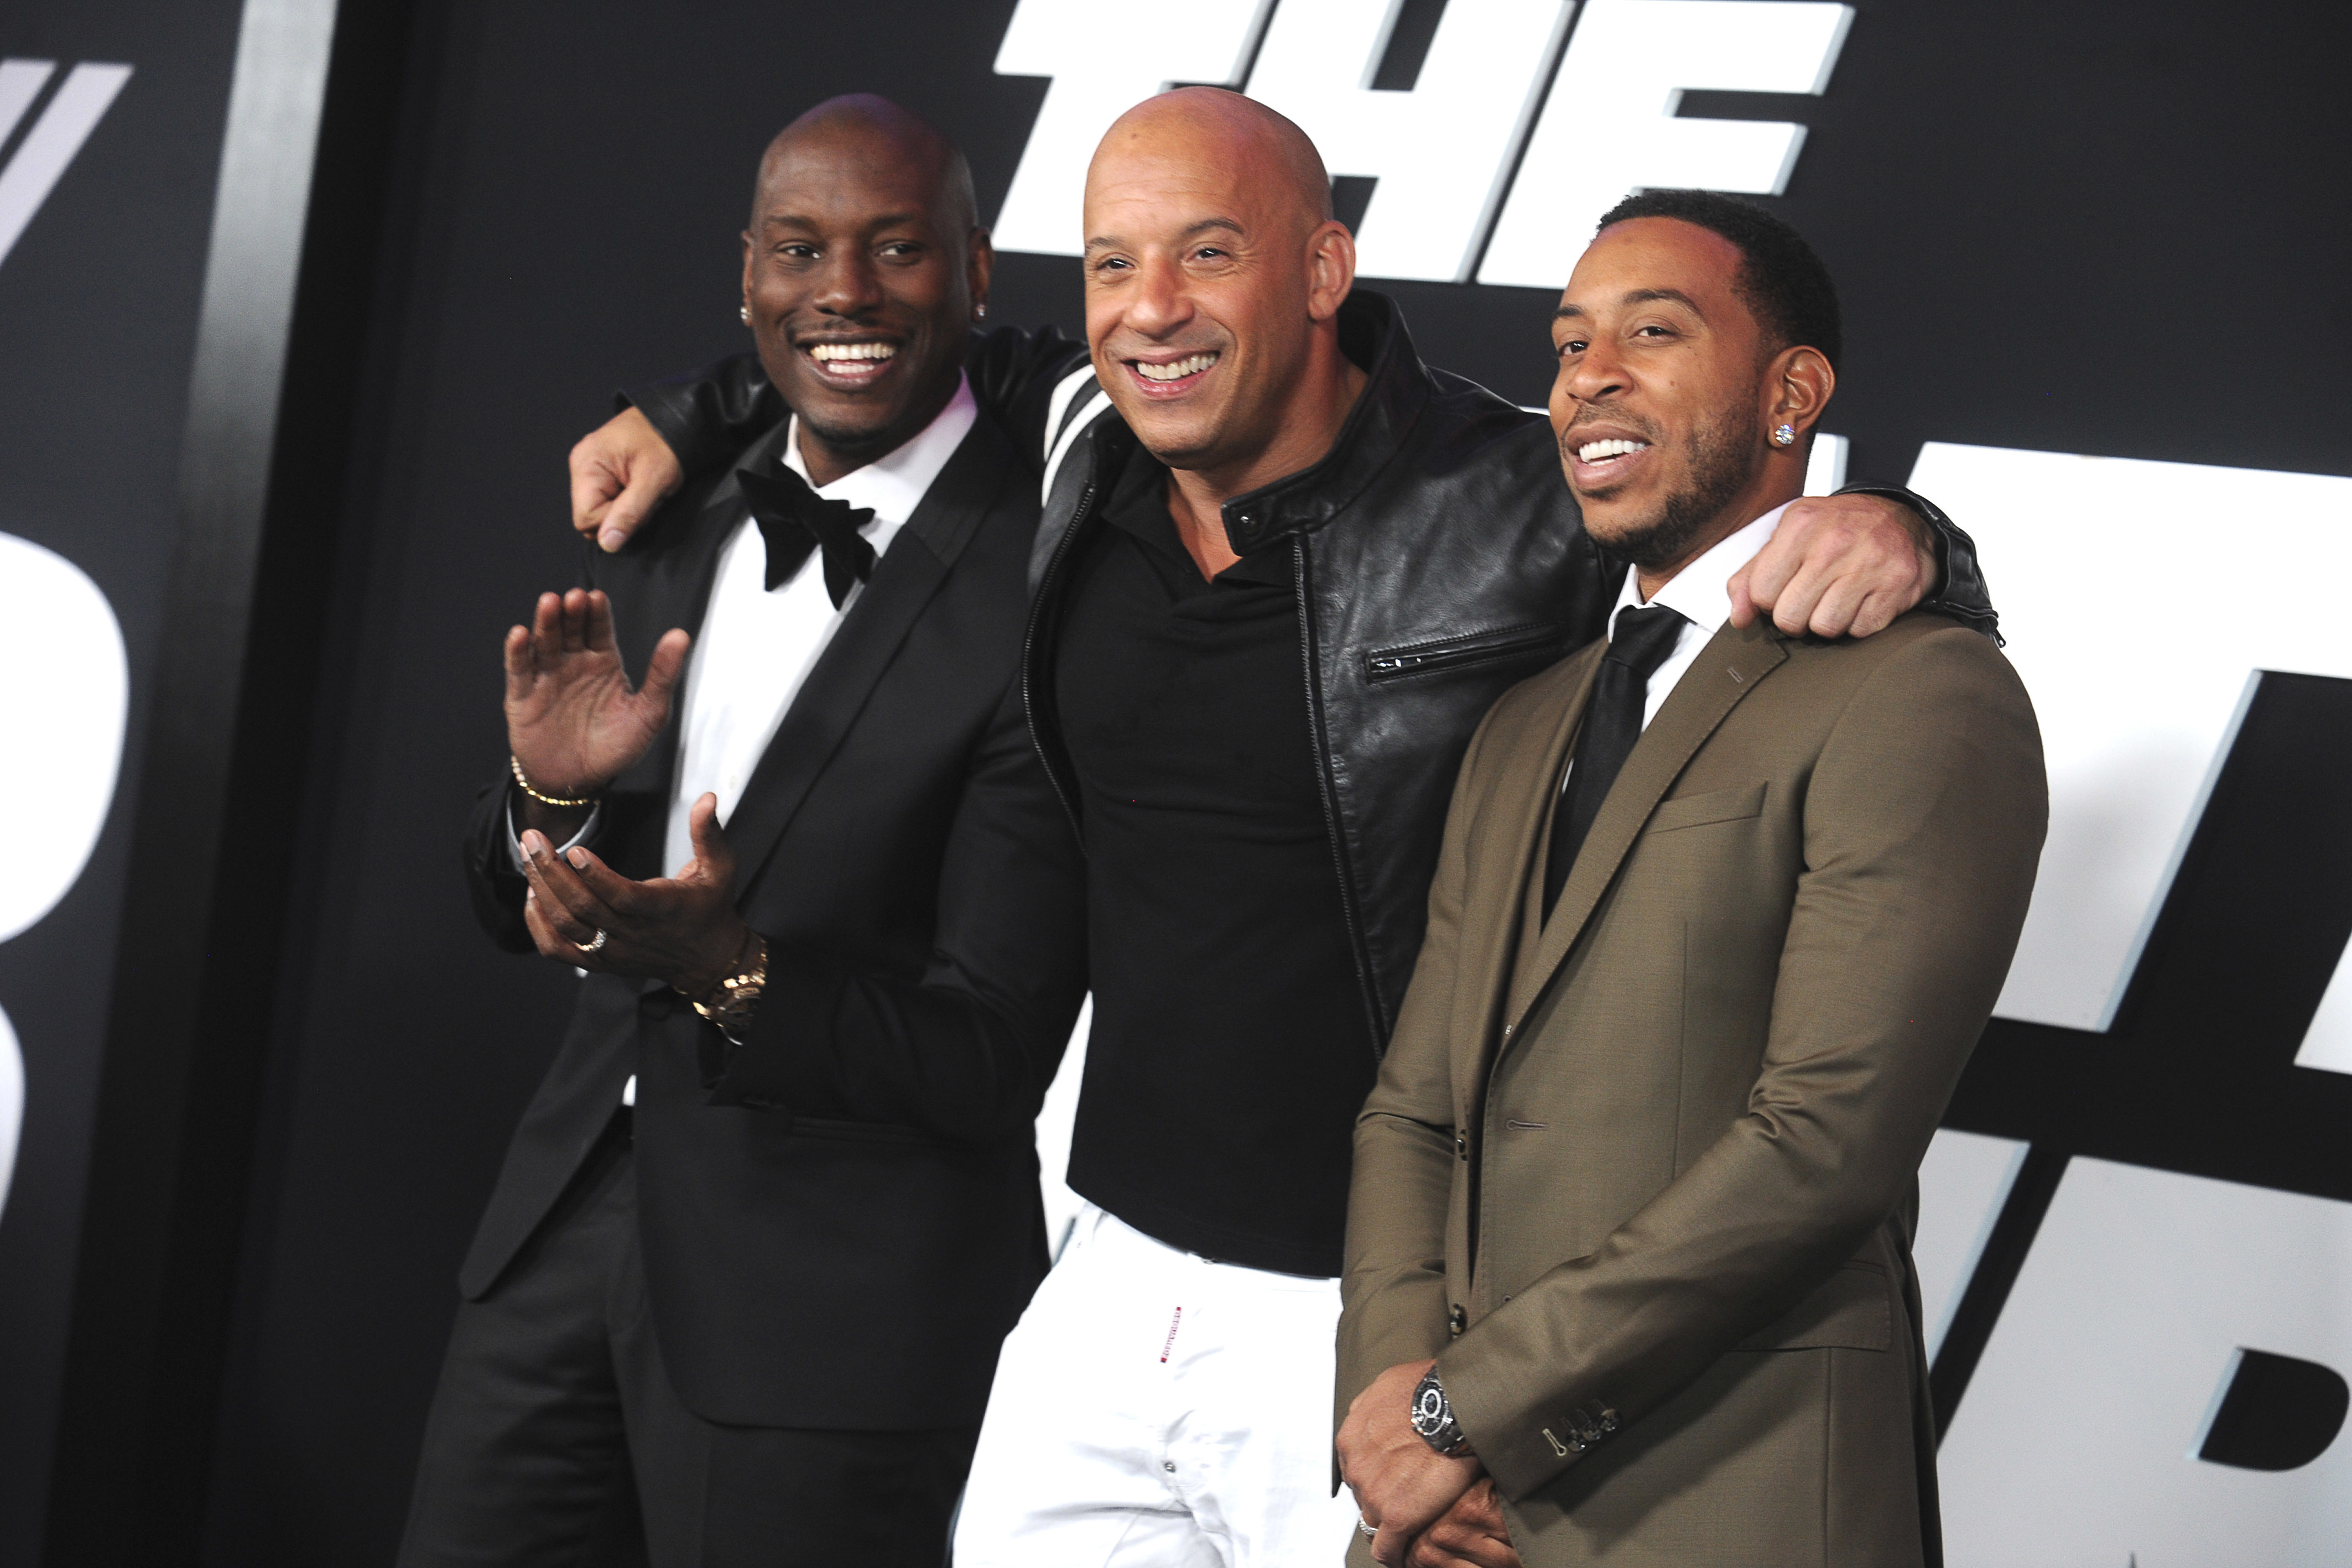 Pics photos tyrese gibson picture 8 - Tyrese Gibson Vin Diesel And Ludacris Attending The New York Premiere Of Fast Amp